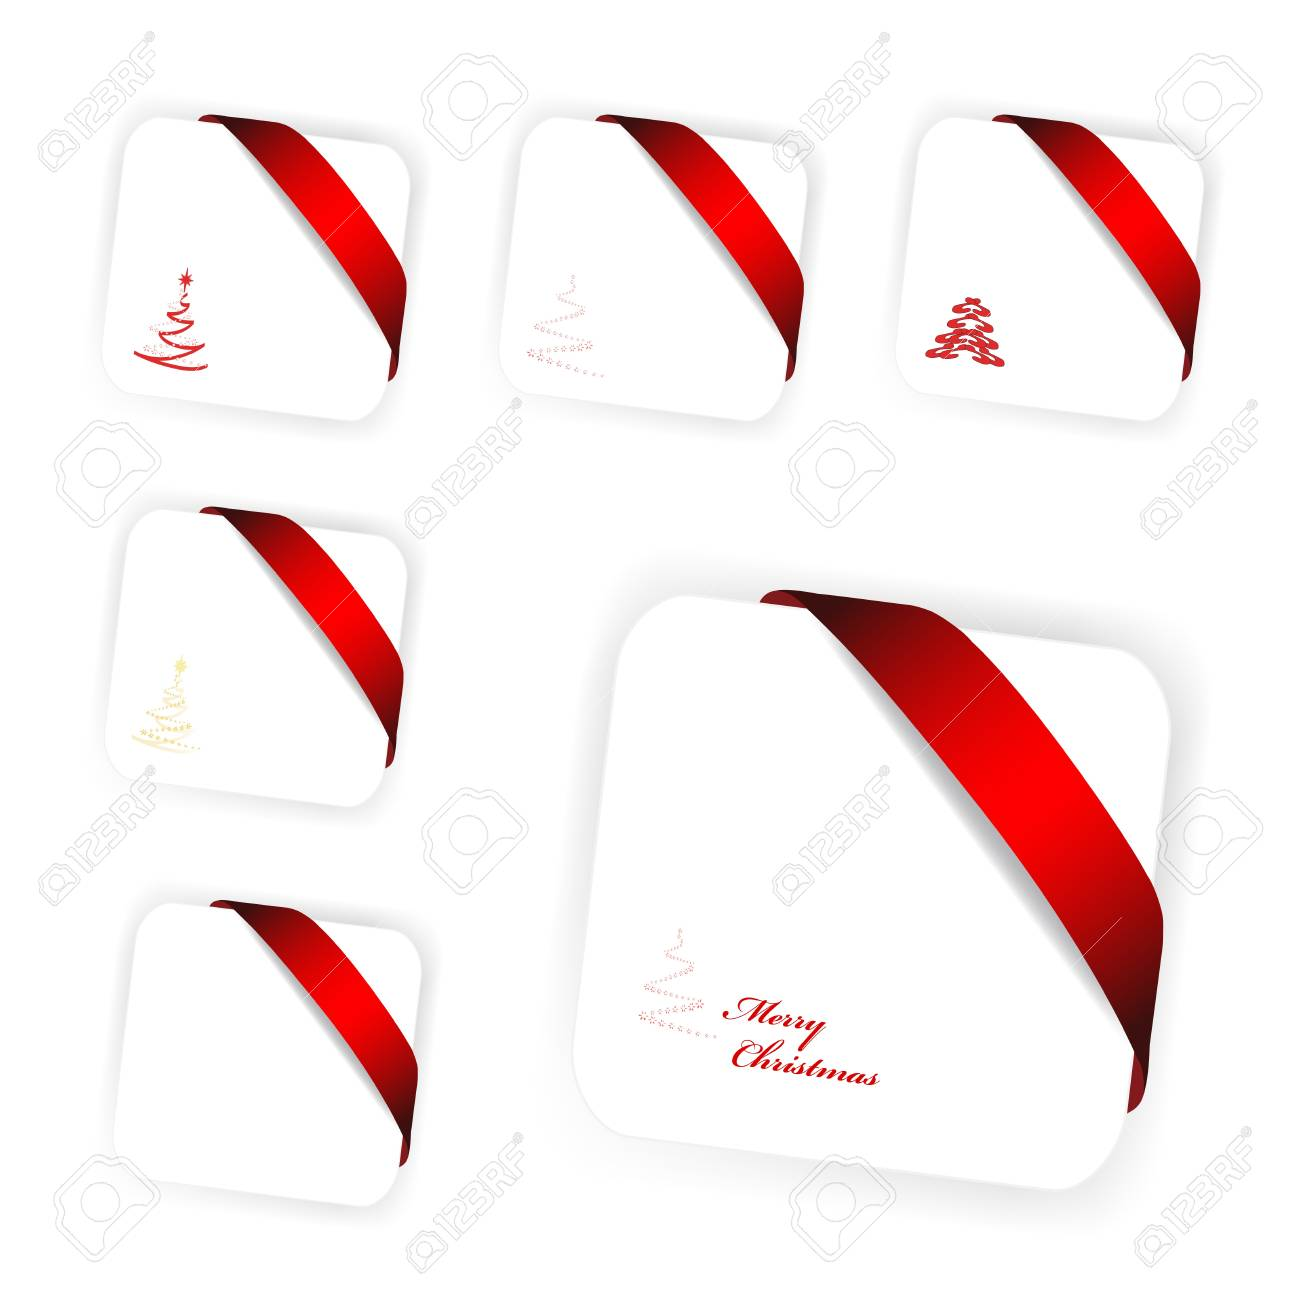 Vector Set Of Christmas Cards Royalty Free Cliparts, Vectors, And ...